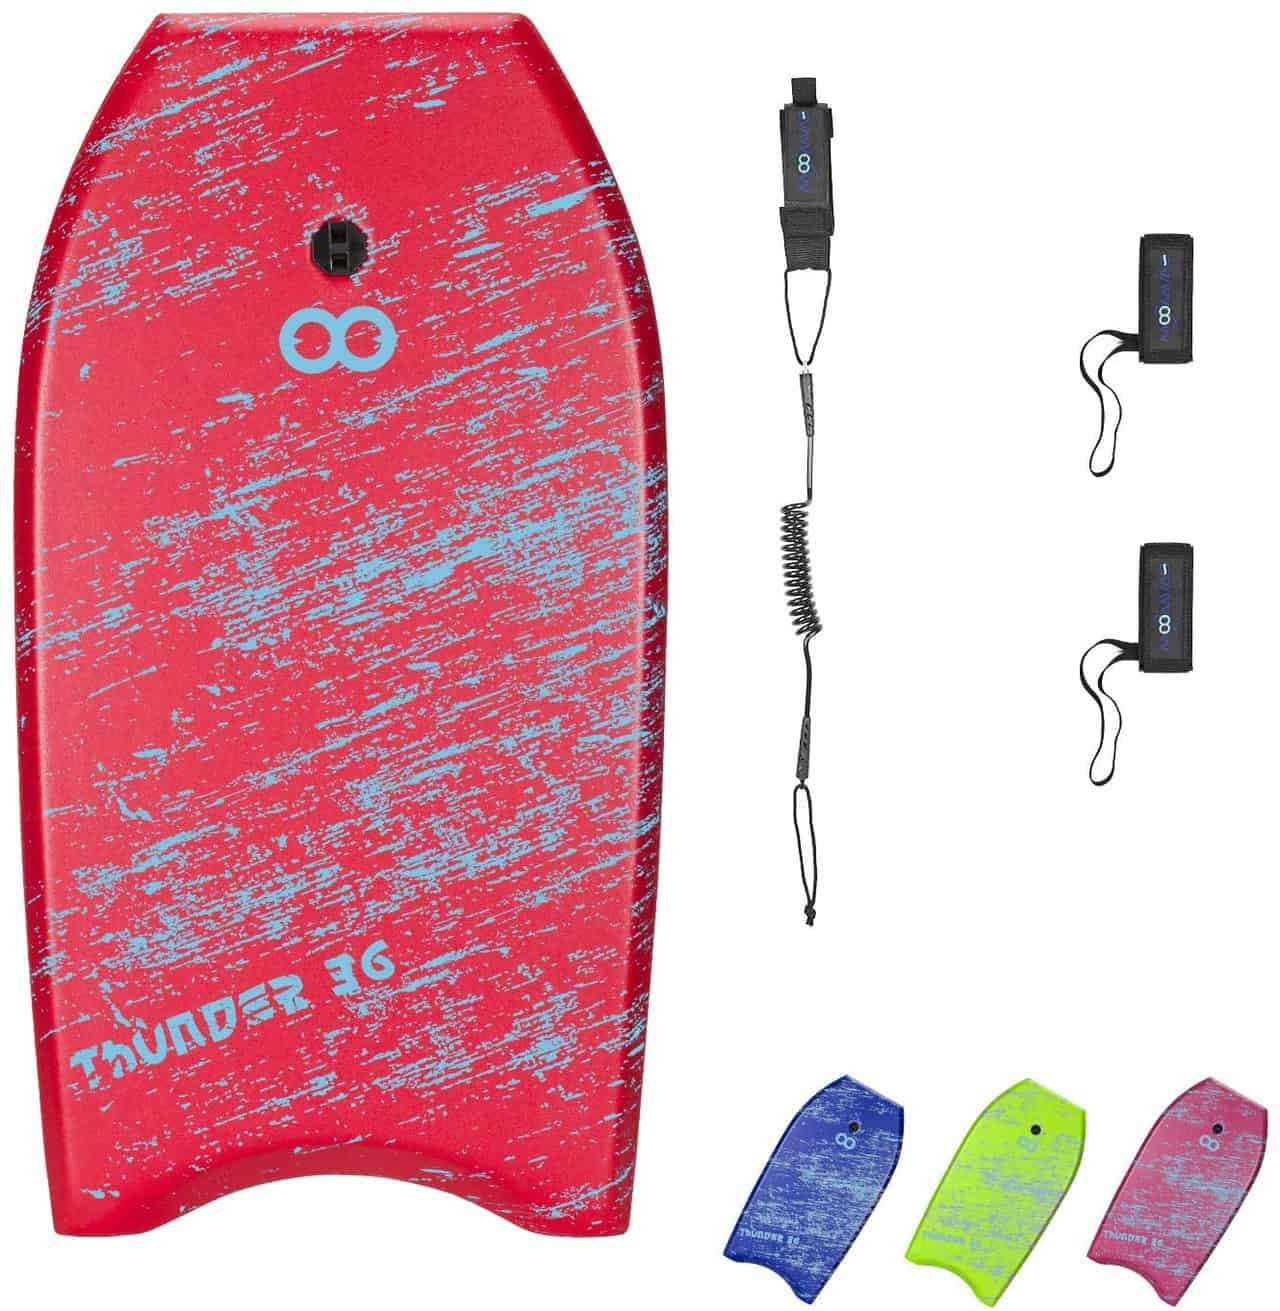 Premium Bodyboard for Kids (33 36-inch) by Woowave